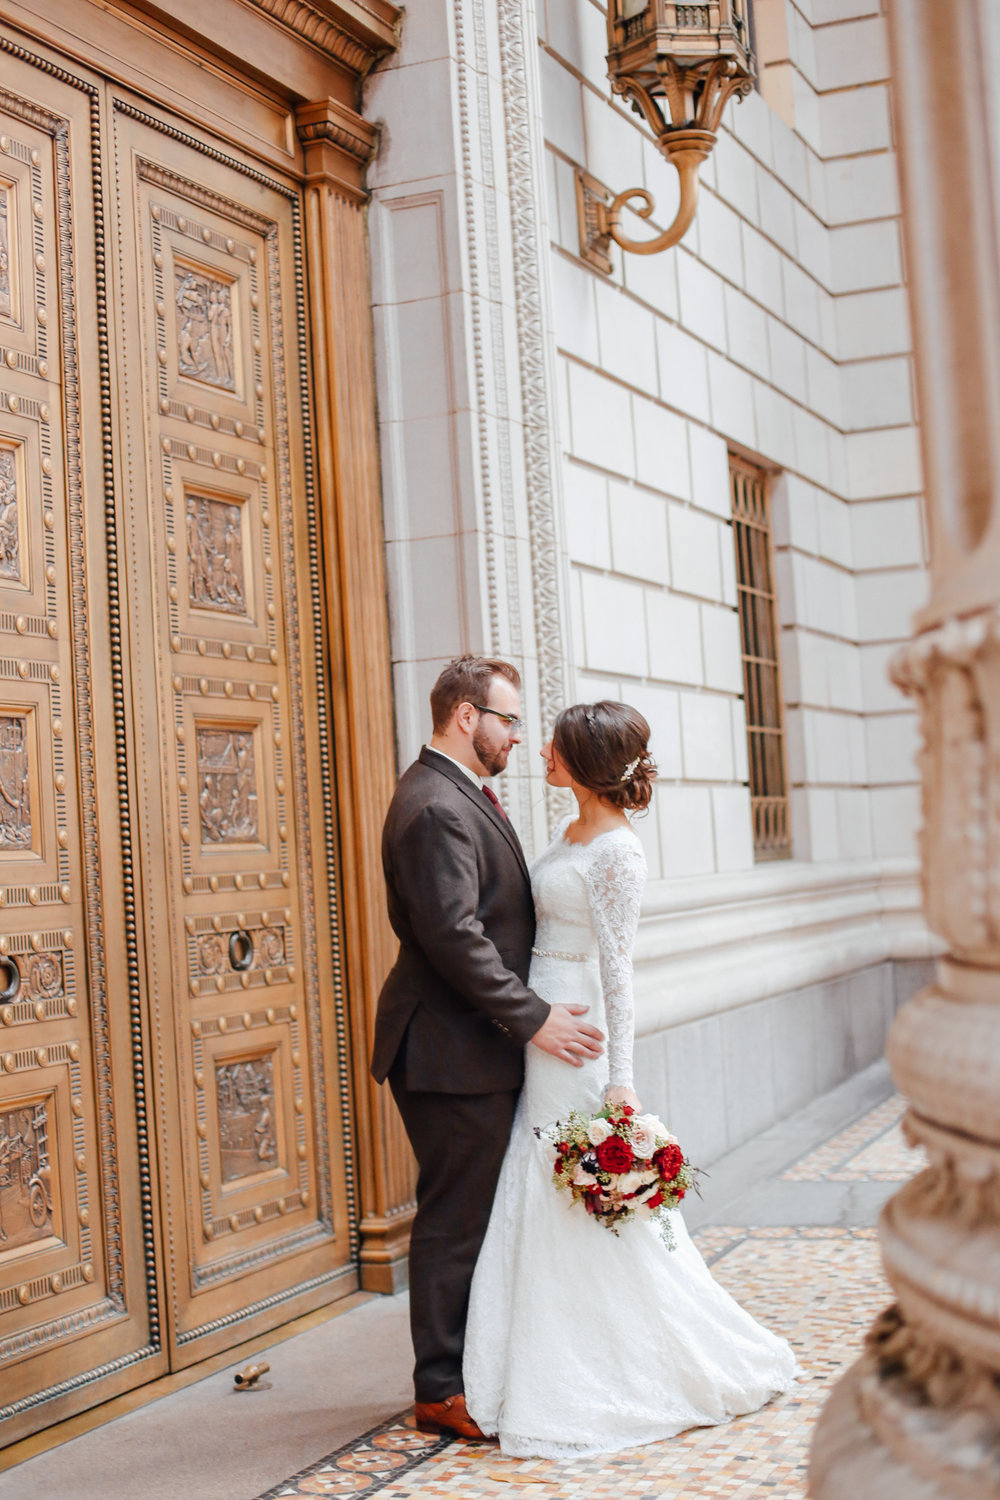 Manu and Laura - Portland Wedding Photographer - 64.jpg